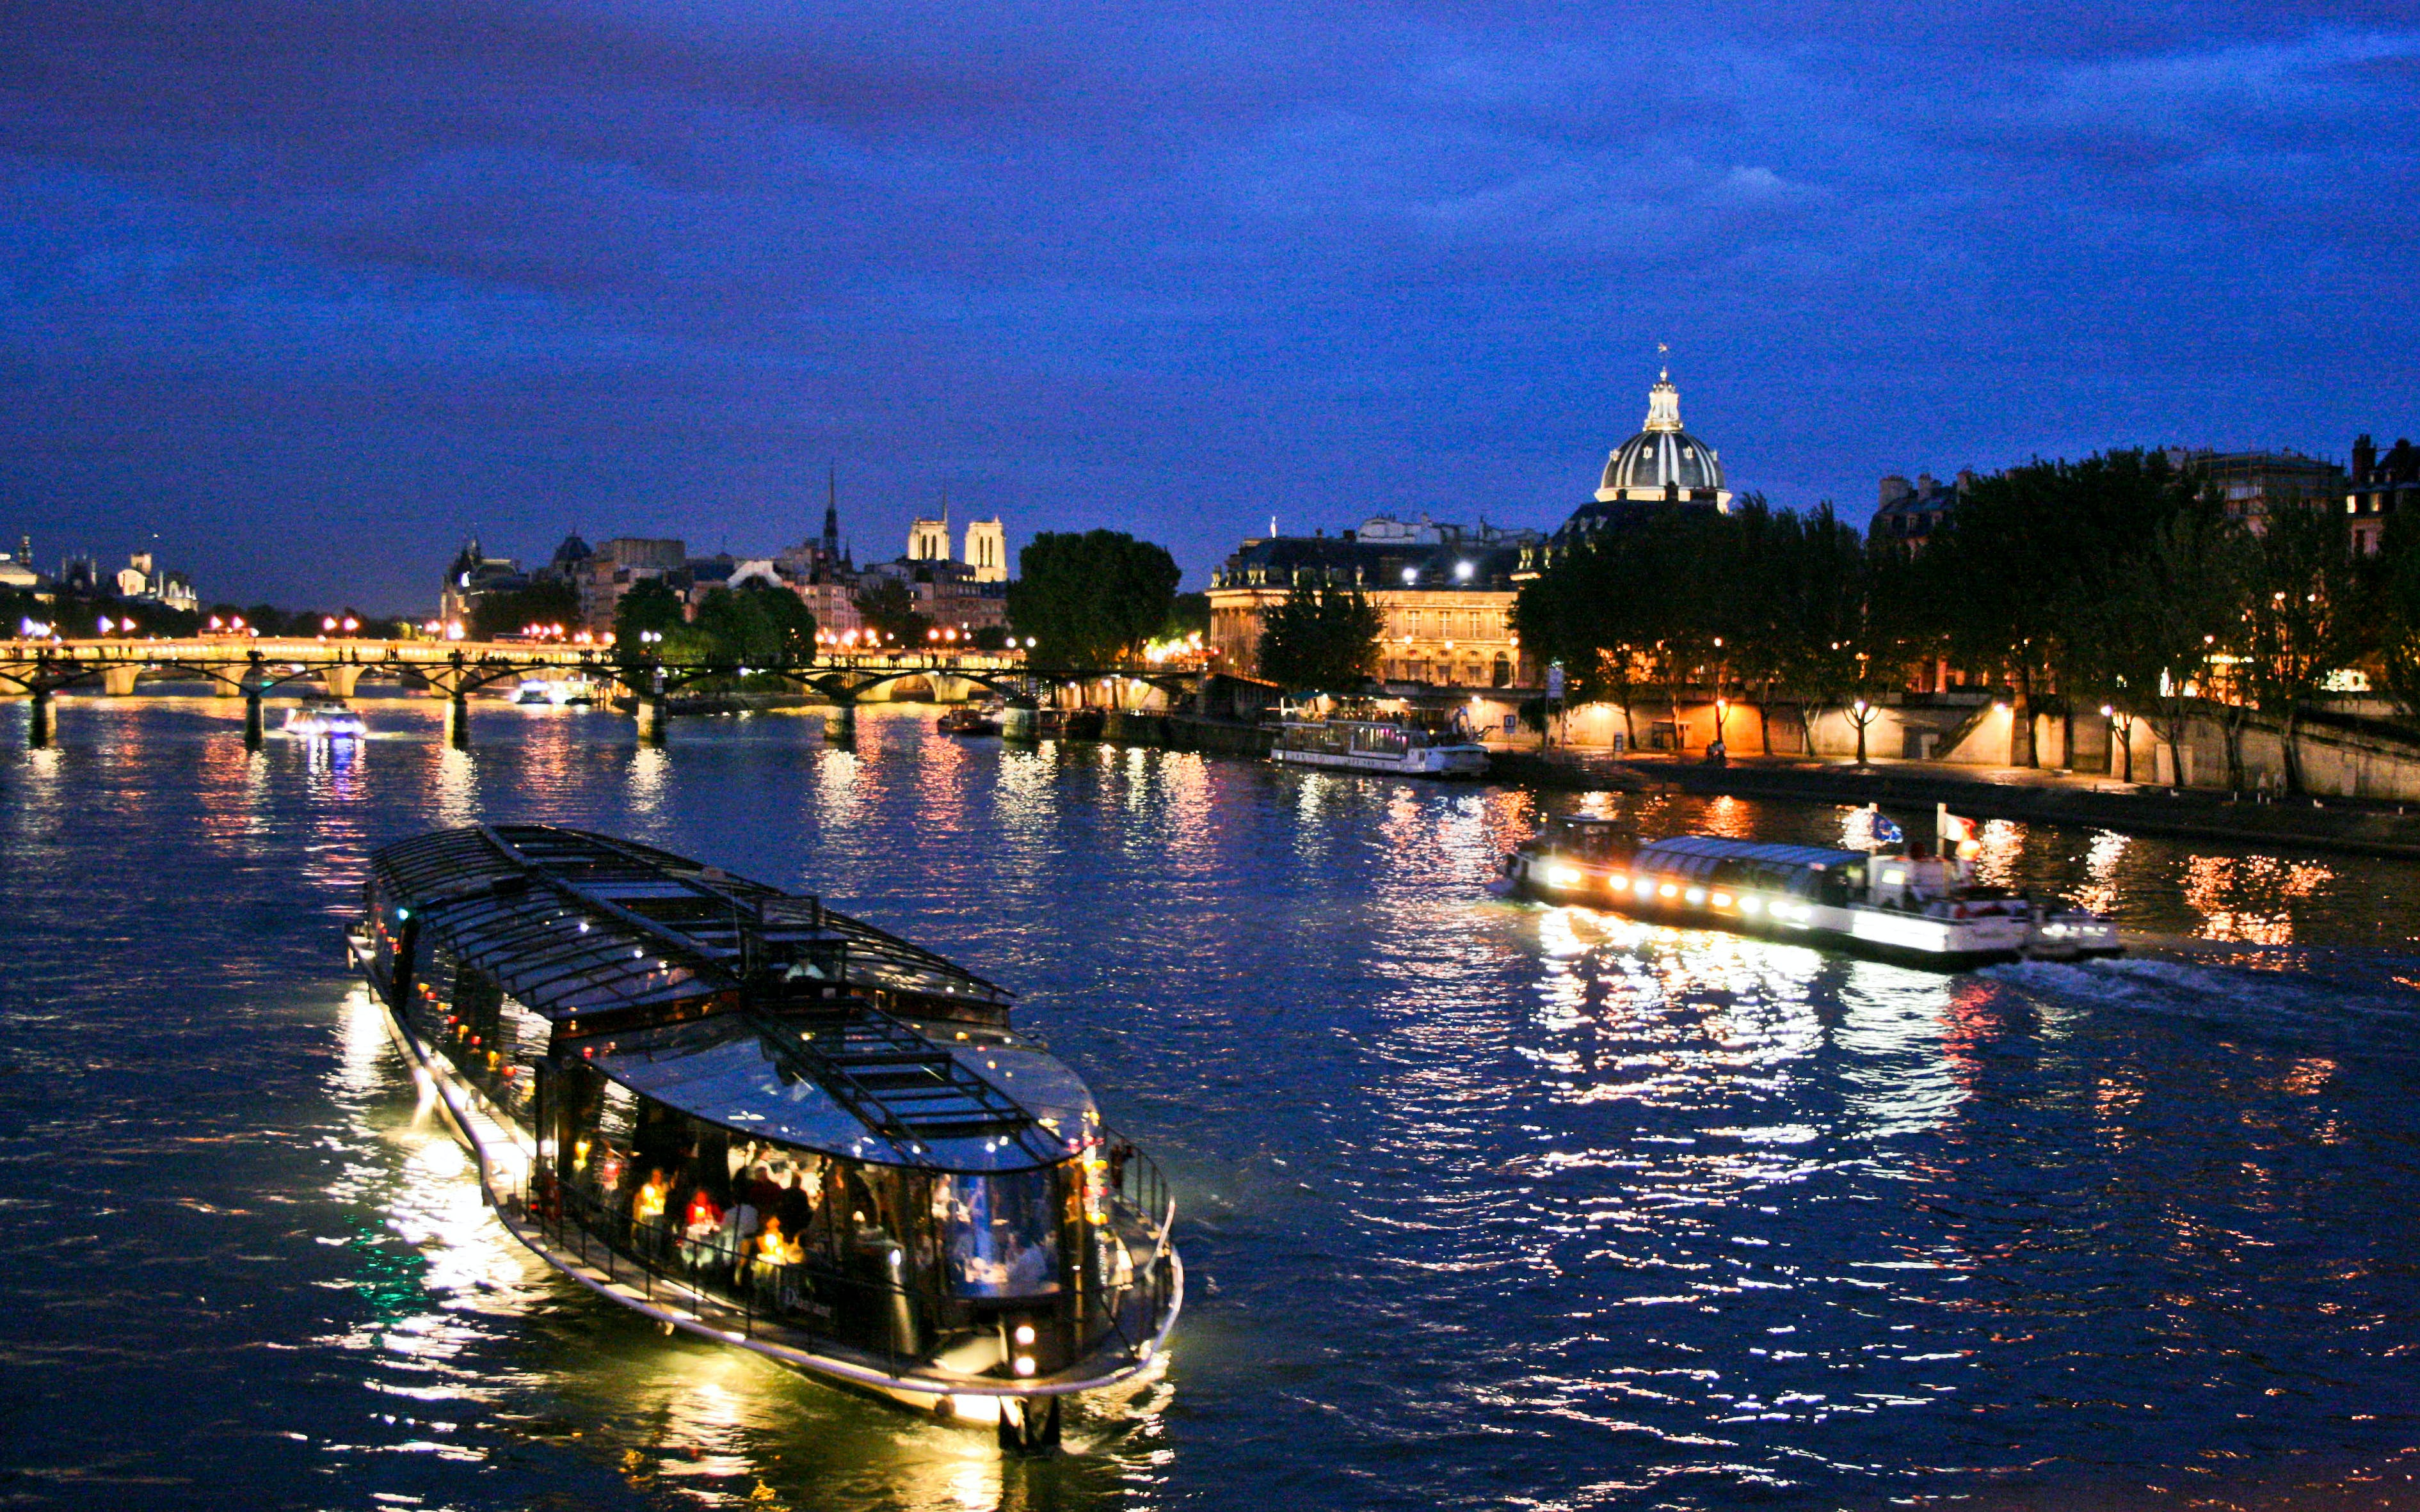 bateaux parisiens late evening seine river dinner cruise with wine-2